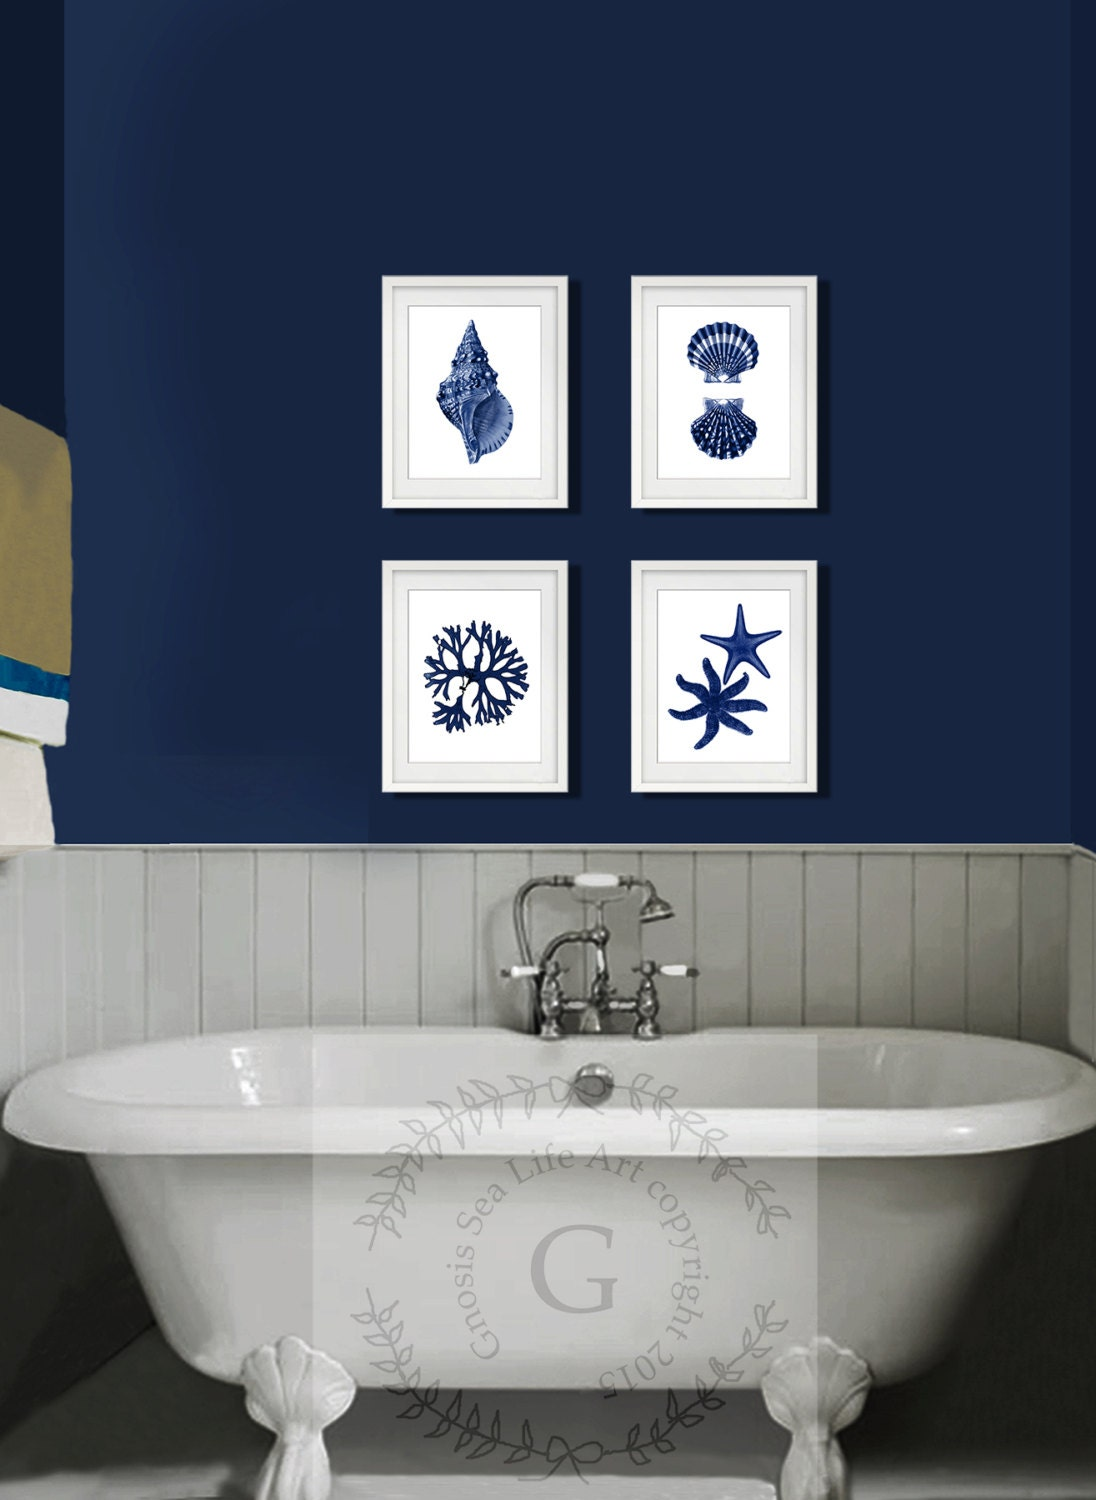 Wall Decorations For Bathroom Walls : Coastal wall decor navy blue art set of beach